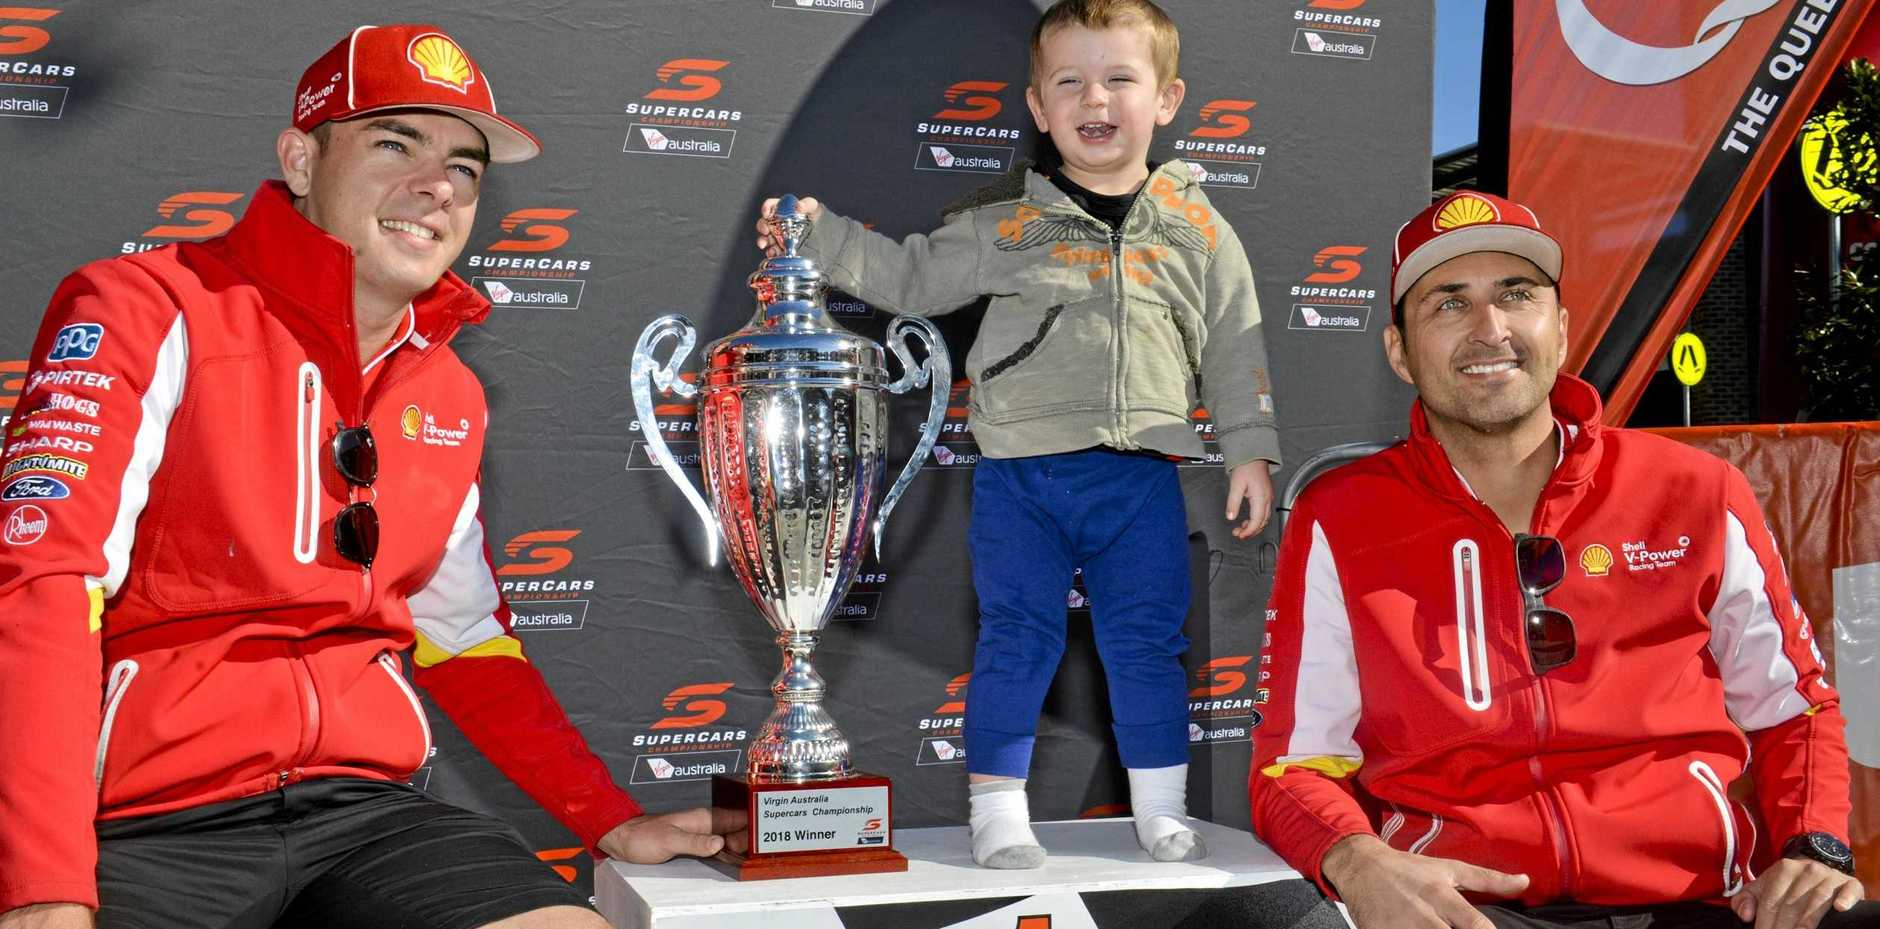 Supercars frontrunners Scott McLaughlin and Fabian Coulthard get a pic with a young fan at last year's community day at Orion Shopping Centre.